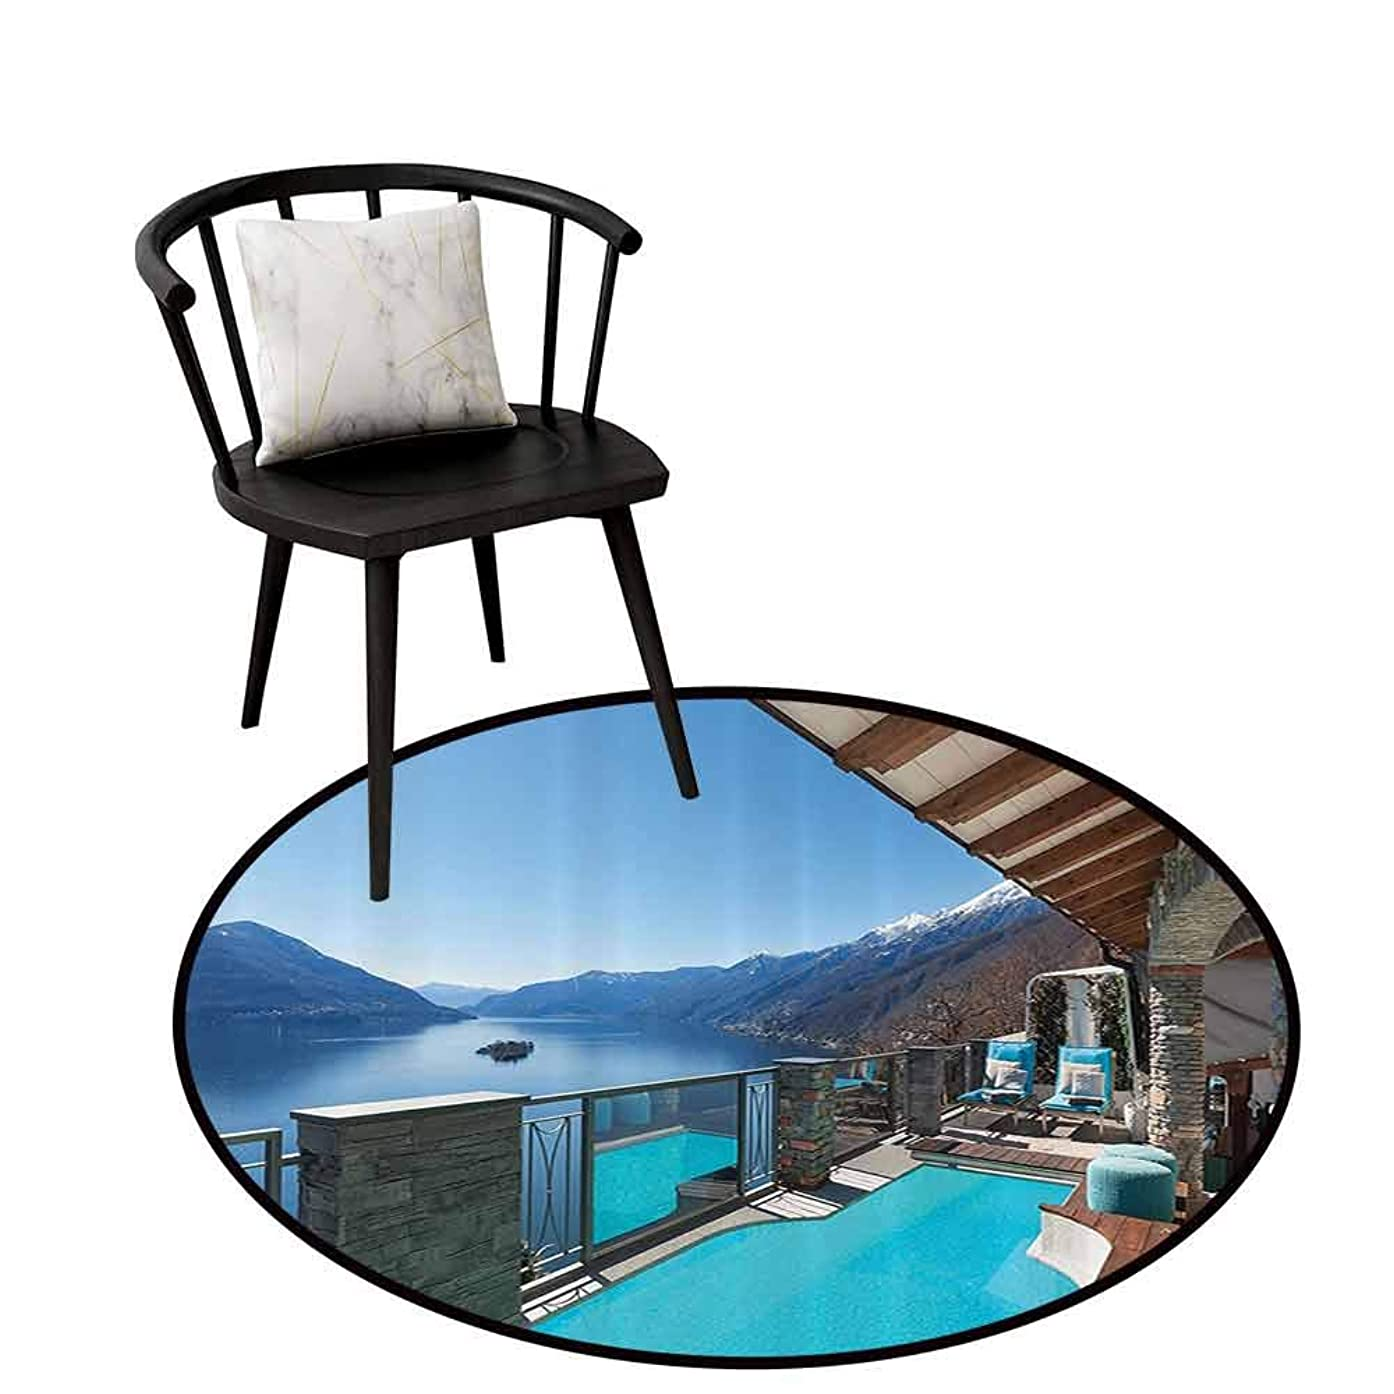 Multi-Pattern Round Rug House Decor Collection Easy to Clean Terrace with Pool and Lake View Luxury House Balcony Leisure Dream Vacation Image Pattern Blue Aqua D31(80cm)